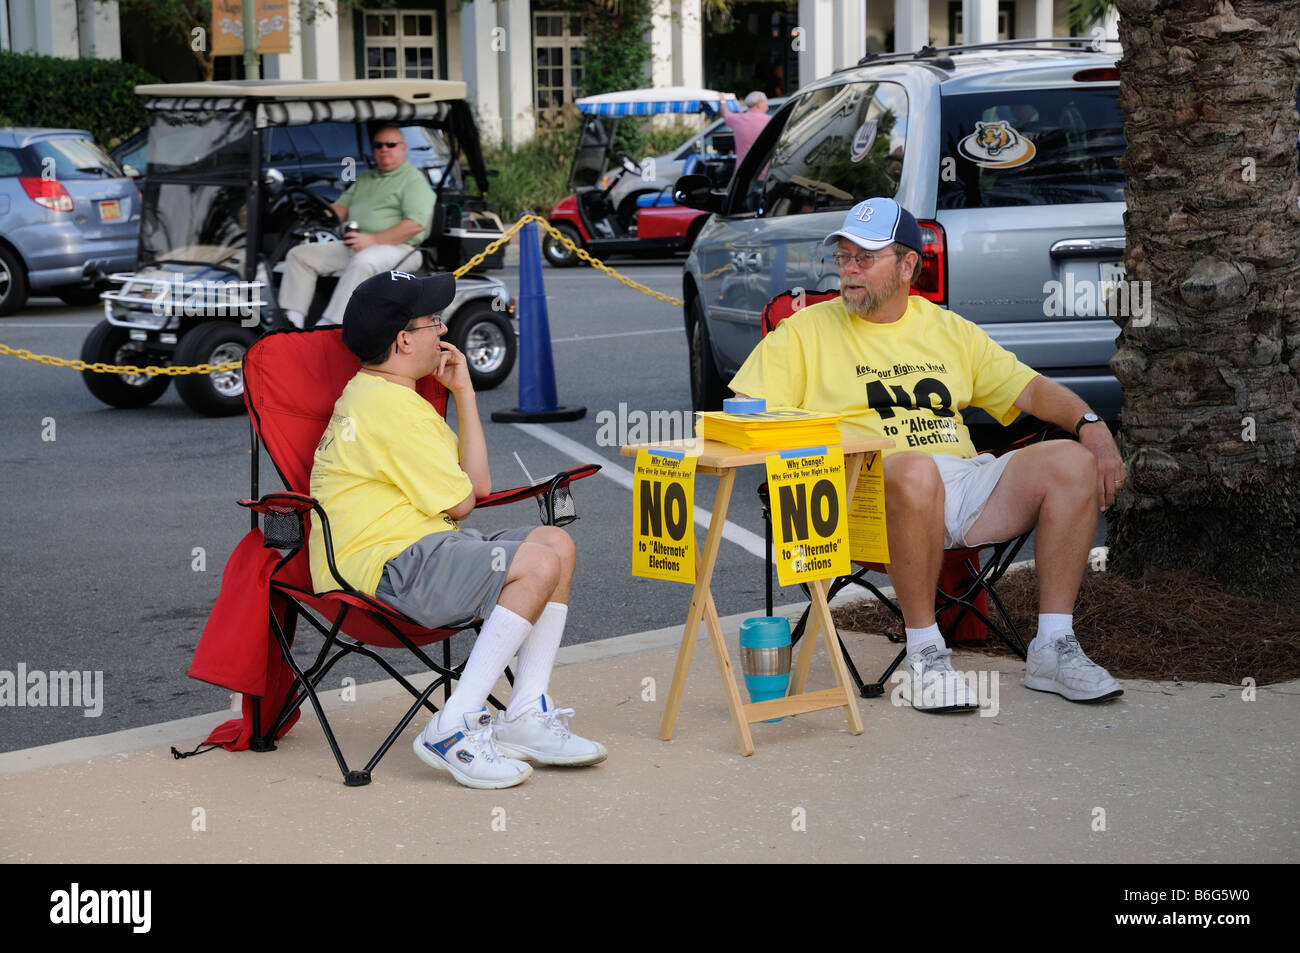 Vote No sign for election of county commissioners and supporters on a Sumter County street in Florida USA - Stock Image